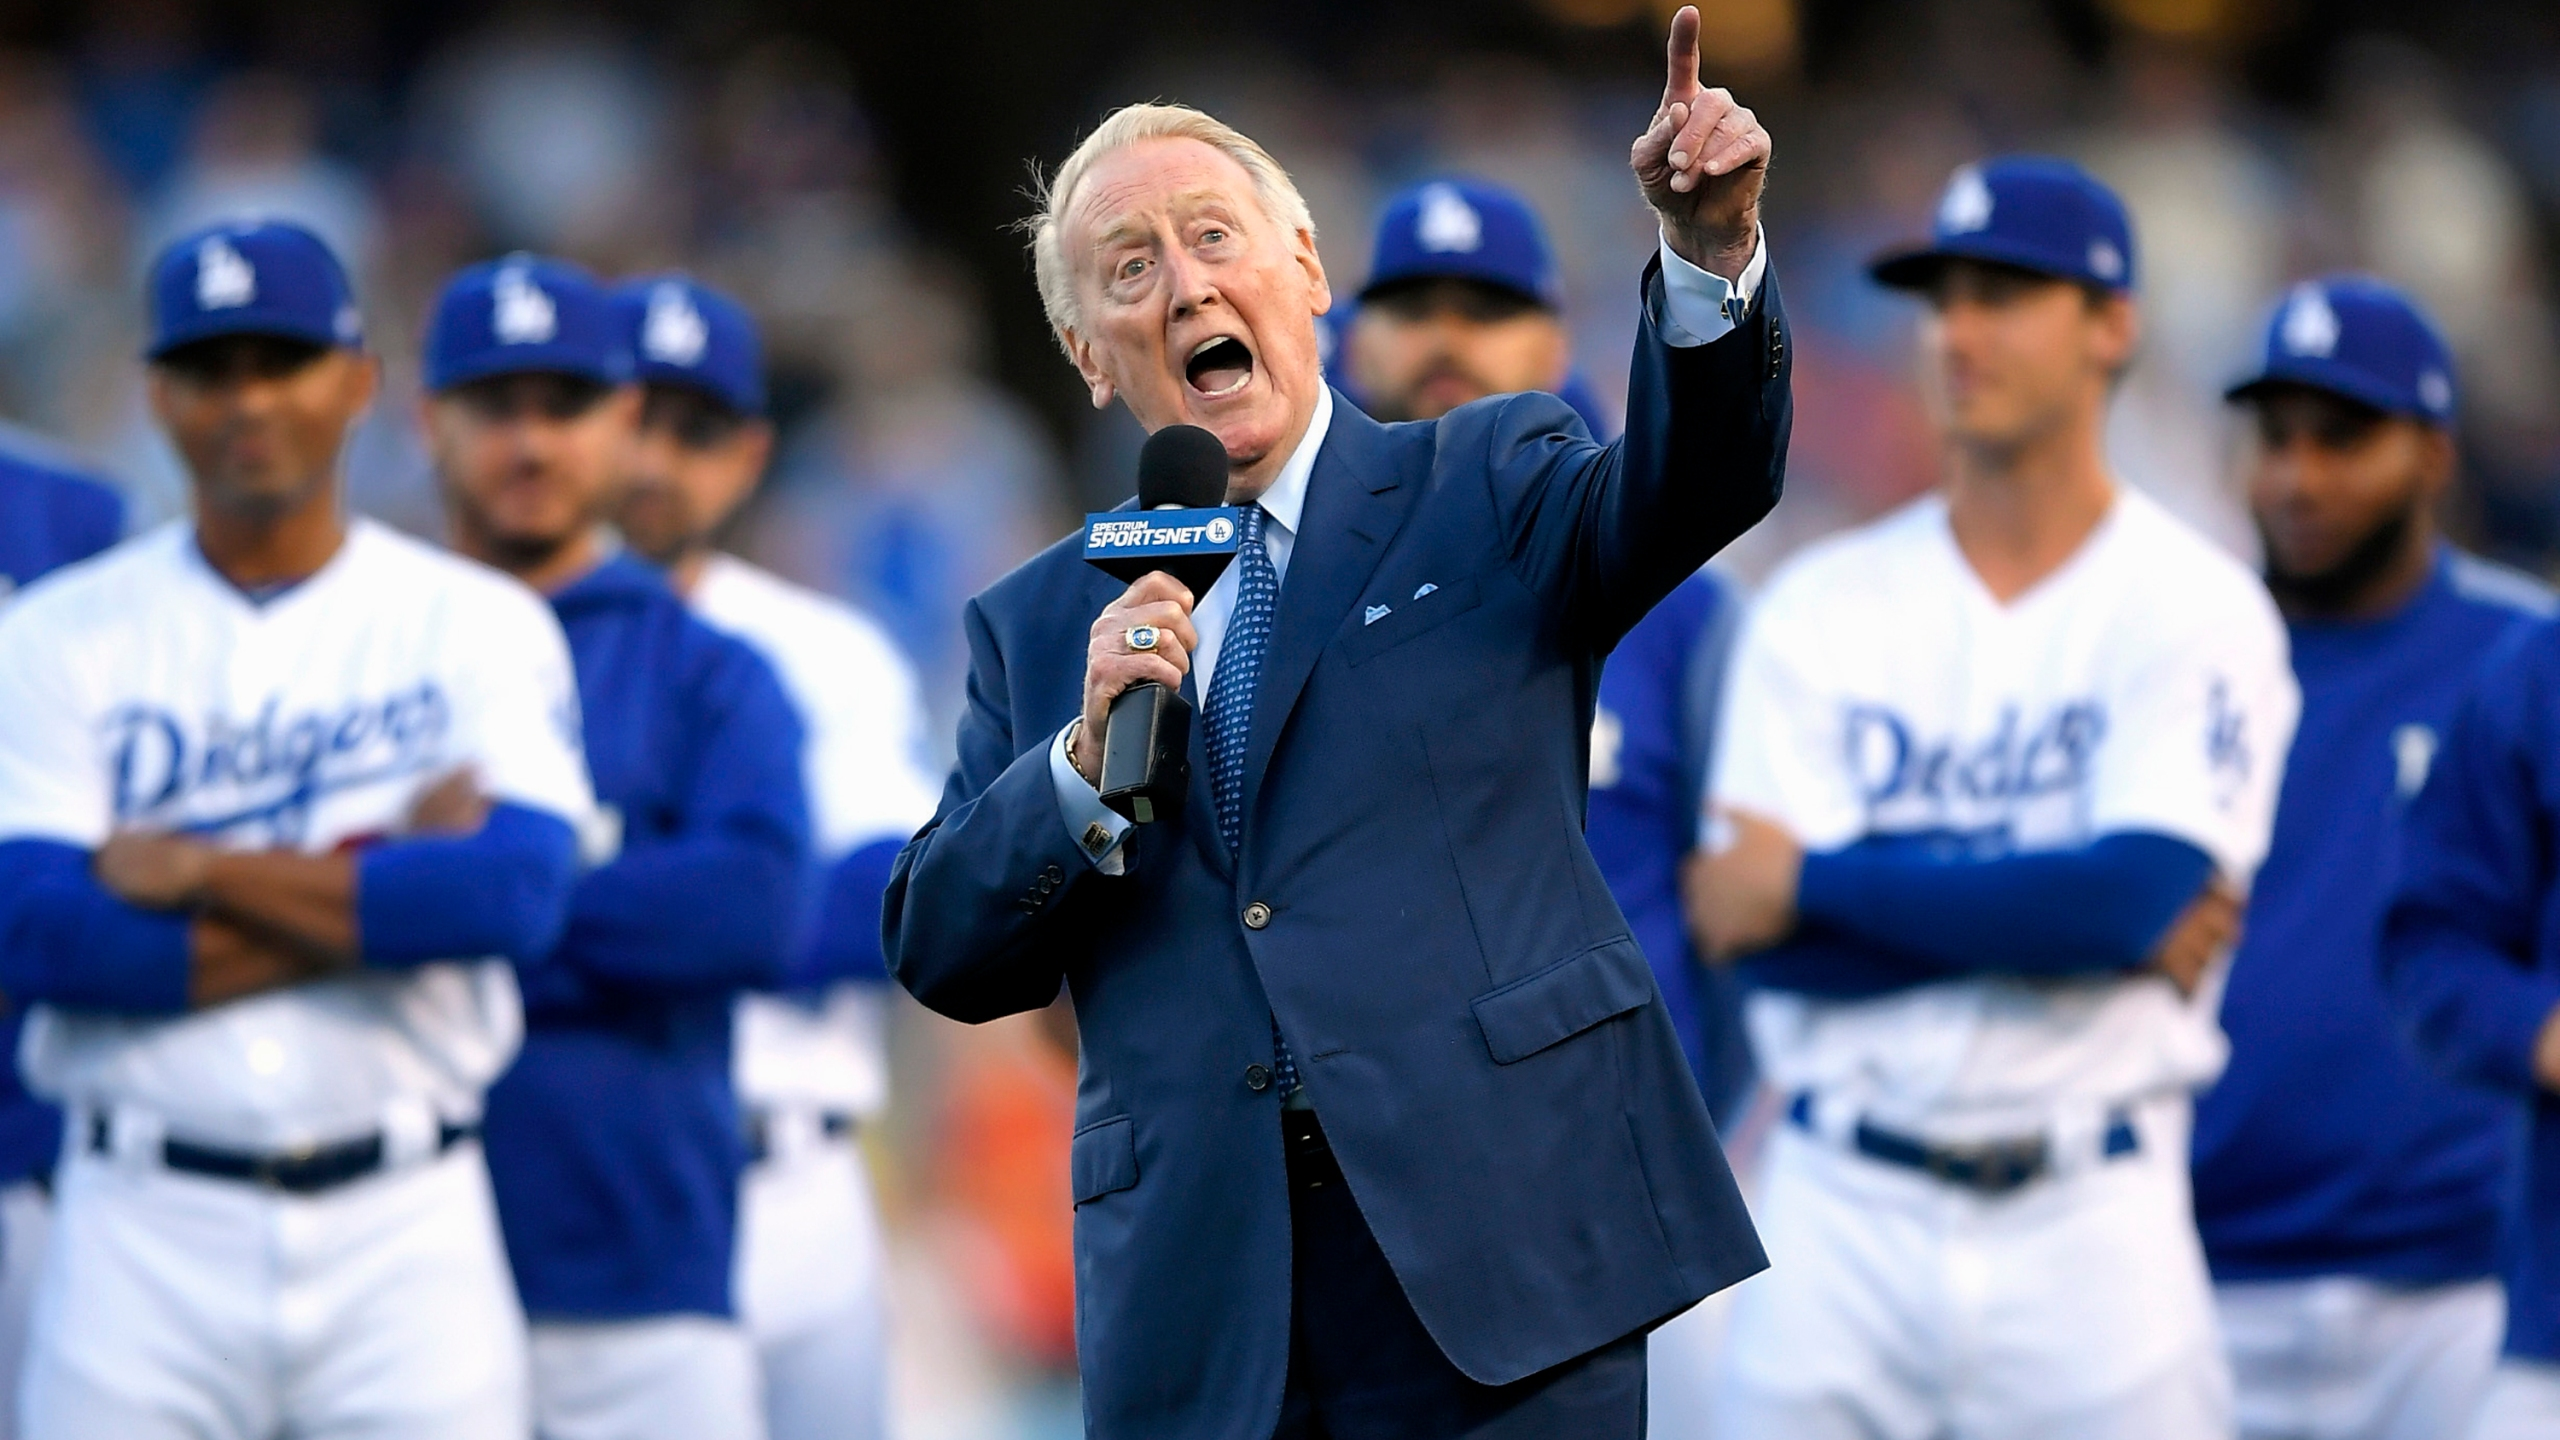 In this May 3, 2017, file photo, Los Angeles Dodgers broadcaster Vin Scully speaks during his induction into the team's Ring of Honor prior to a baseball game between the Dodgers and the San Francisco Giants, in Los Angeles. (AP Photo/Mark J. Terrill, File)